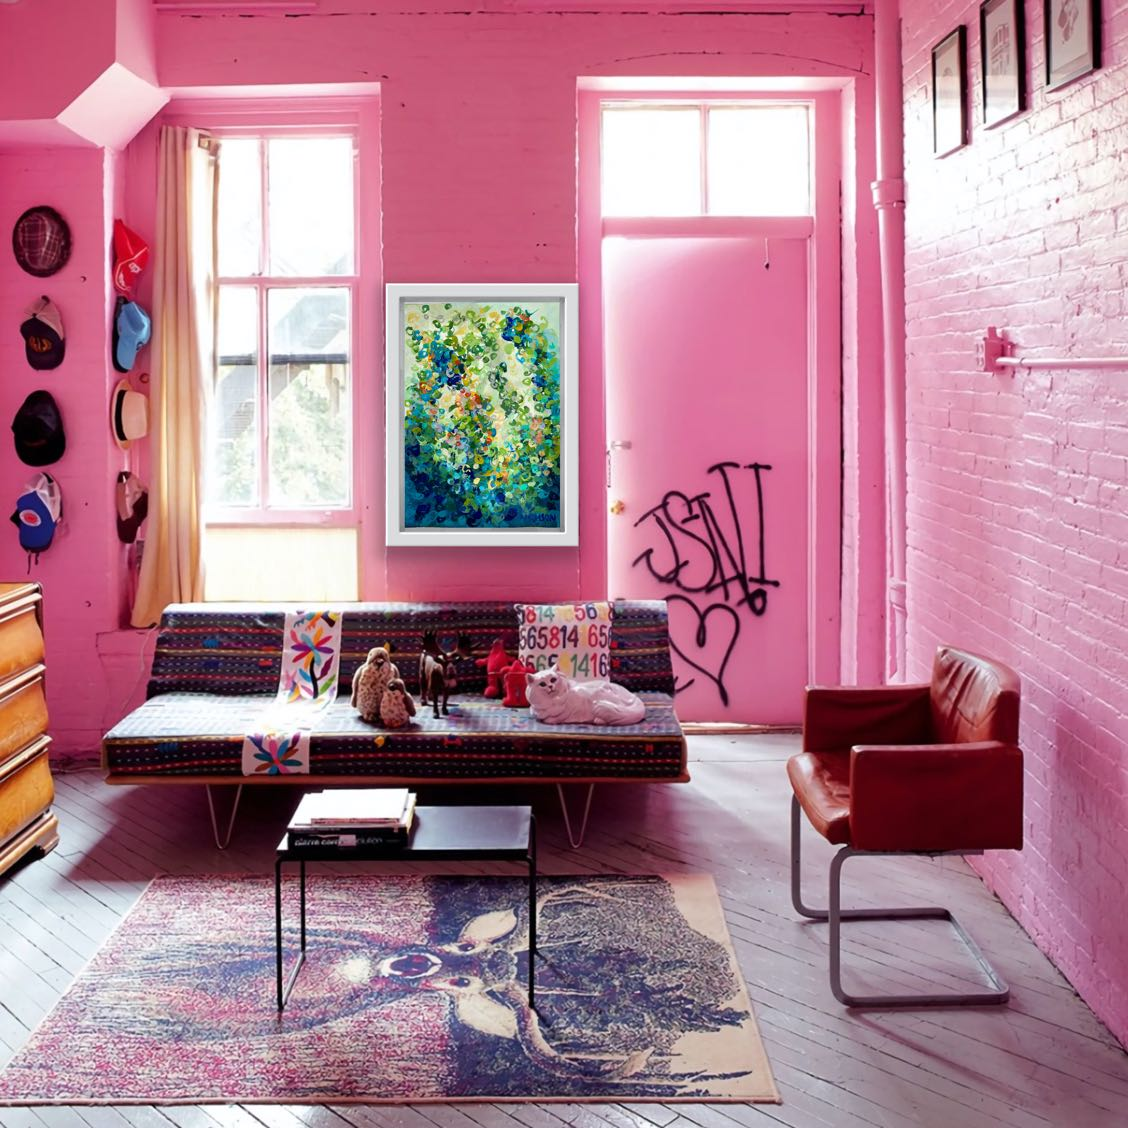 Meaning of Colour Pink